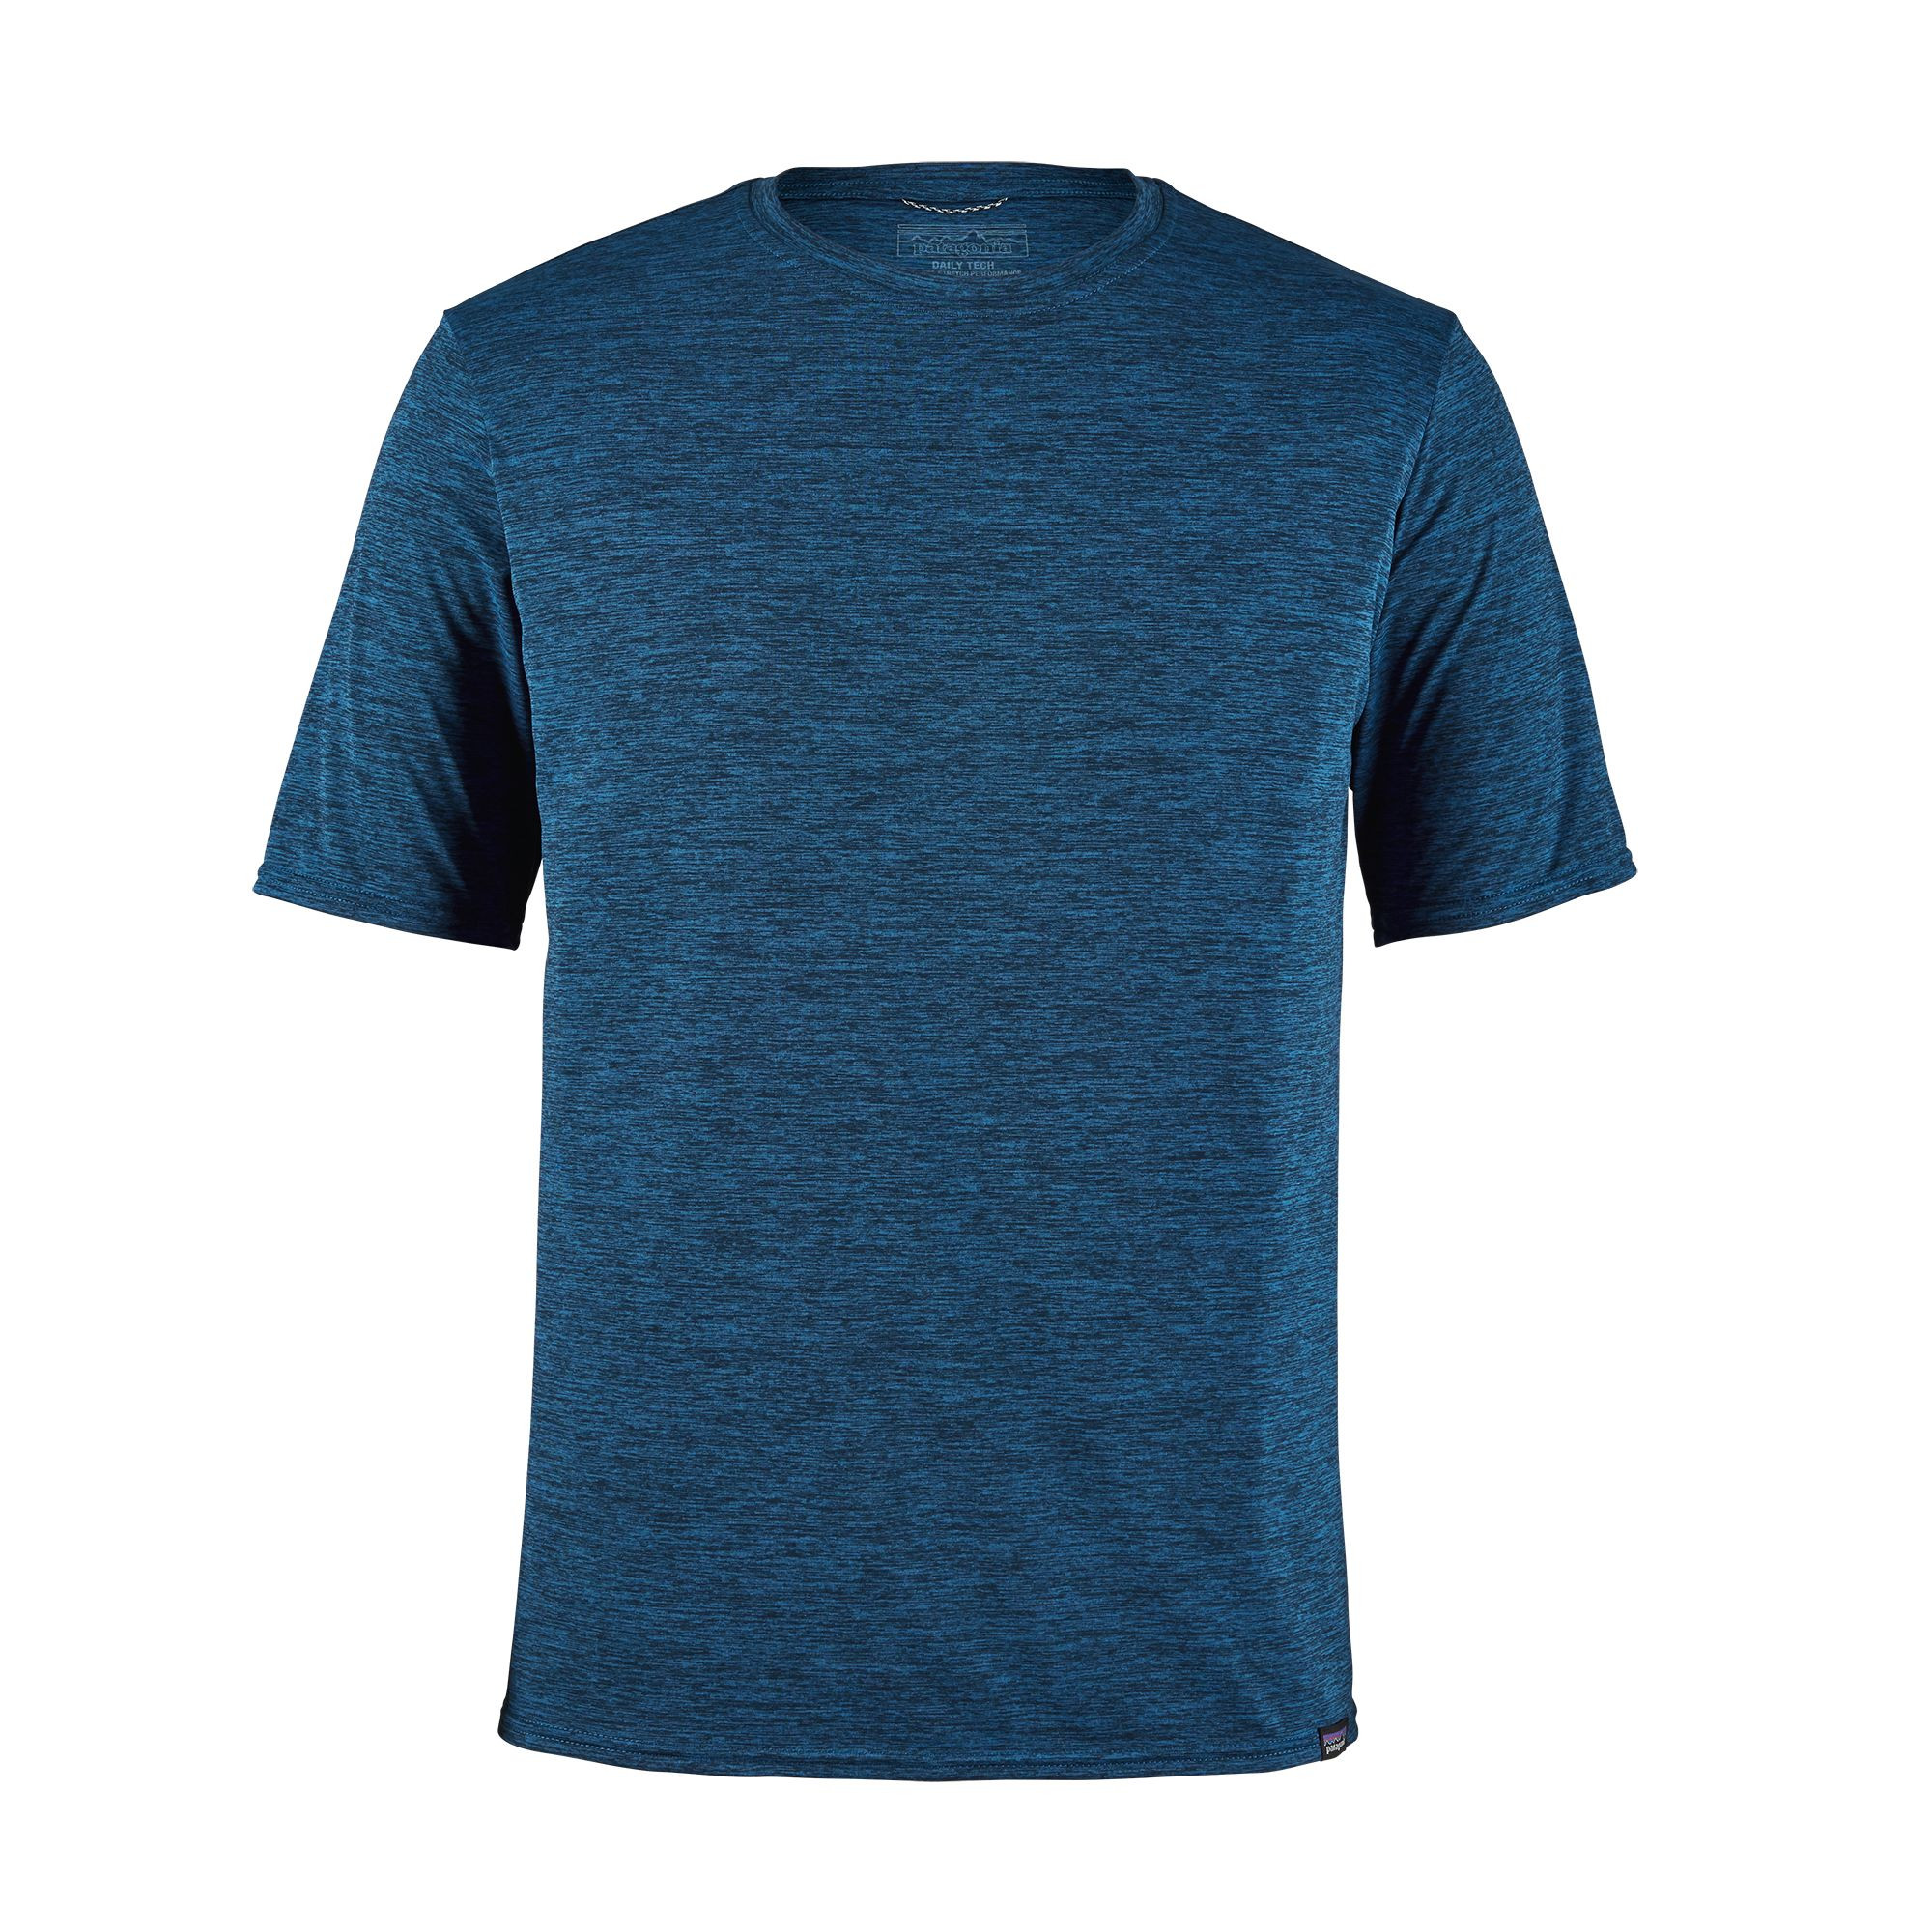 T-shirt Men's Capilene Cool Daily Shirt Bleu